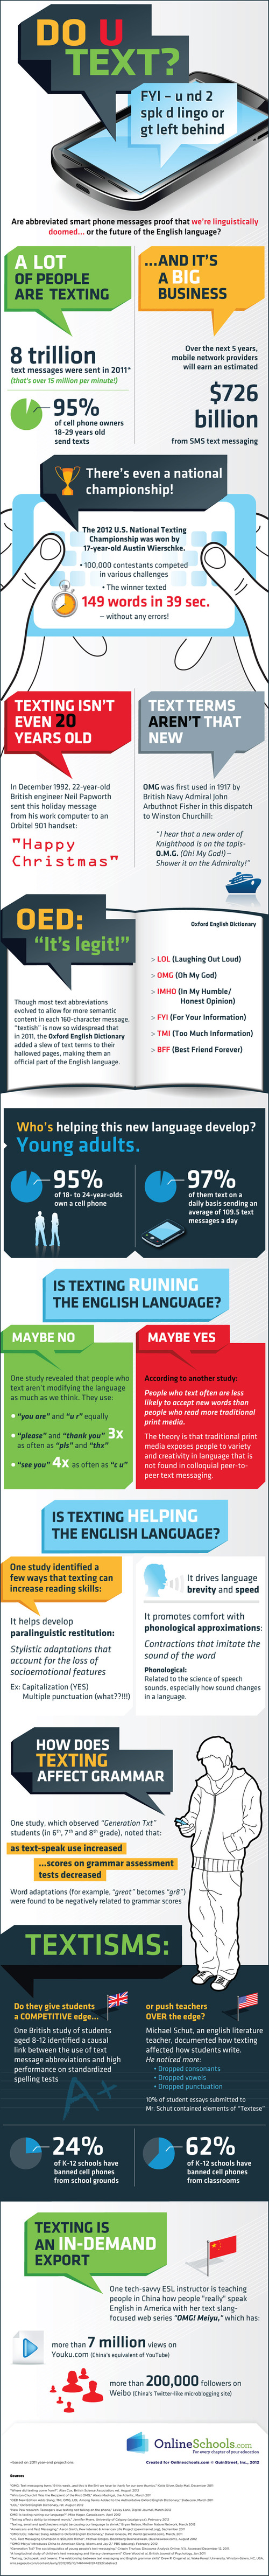 Text-talk_infographic